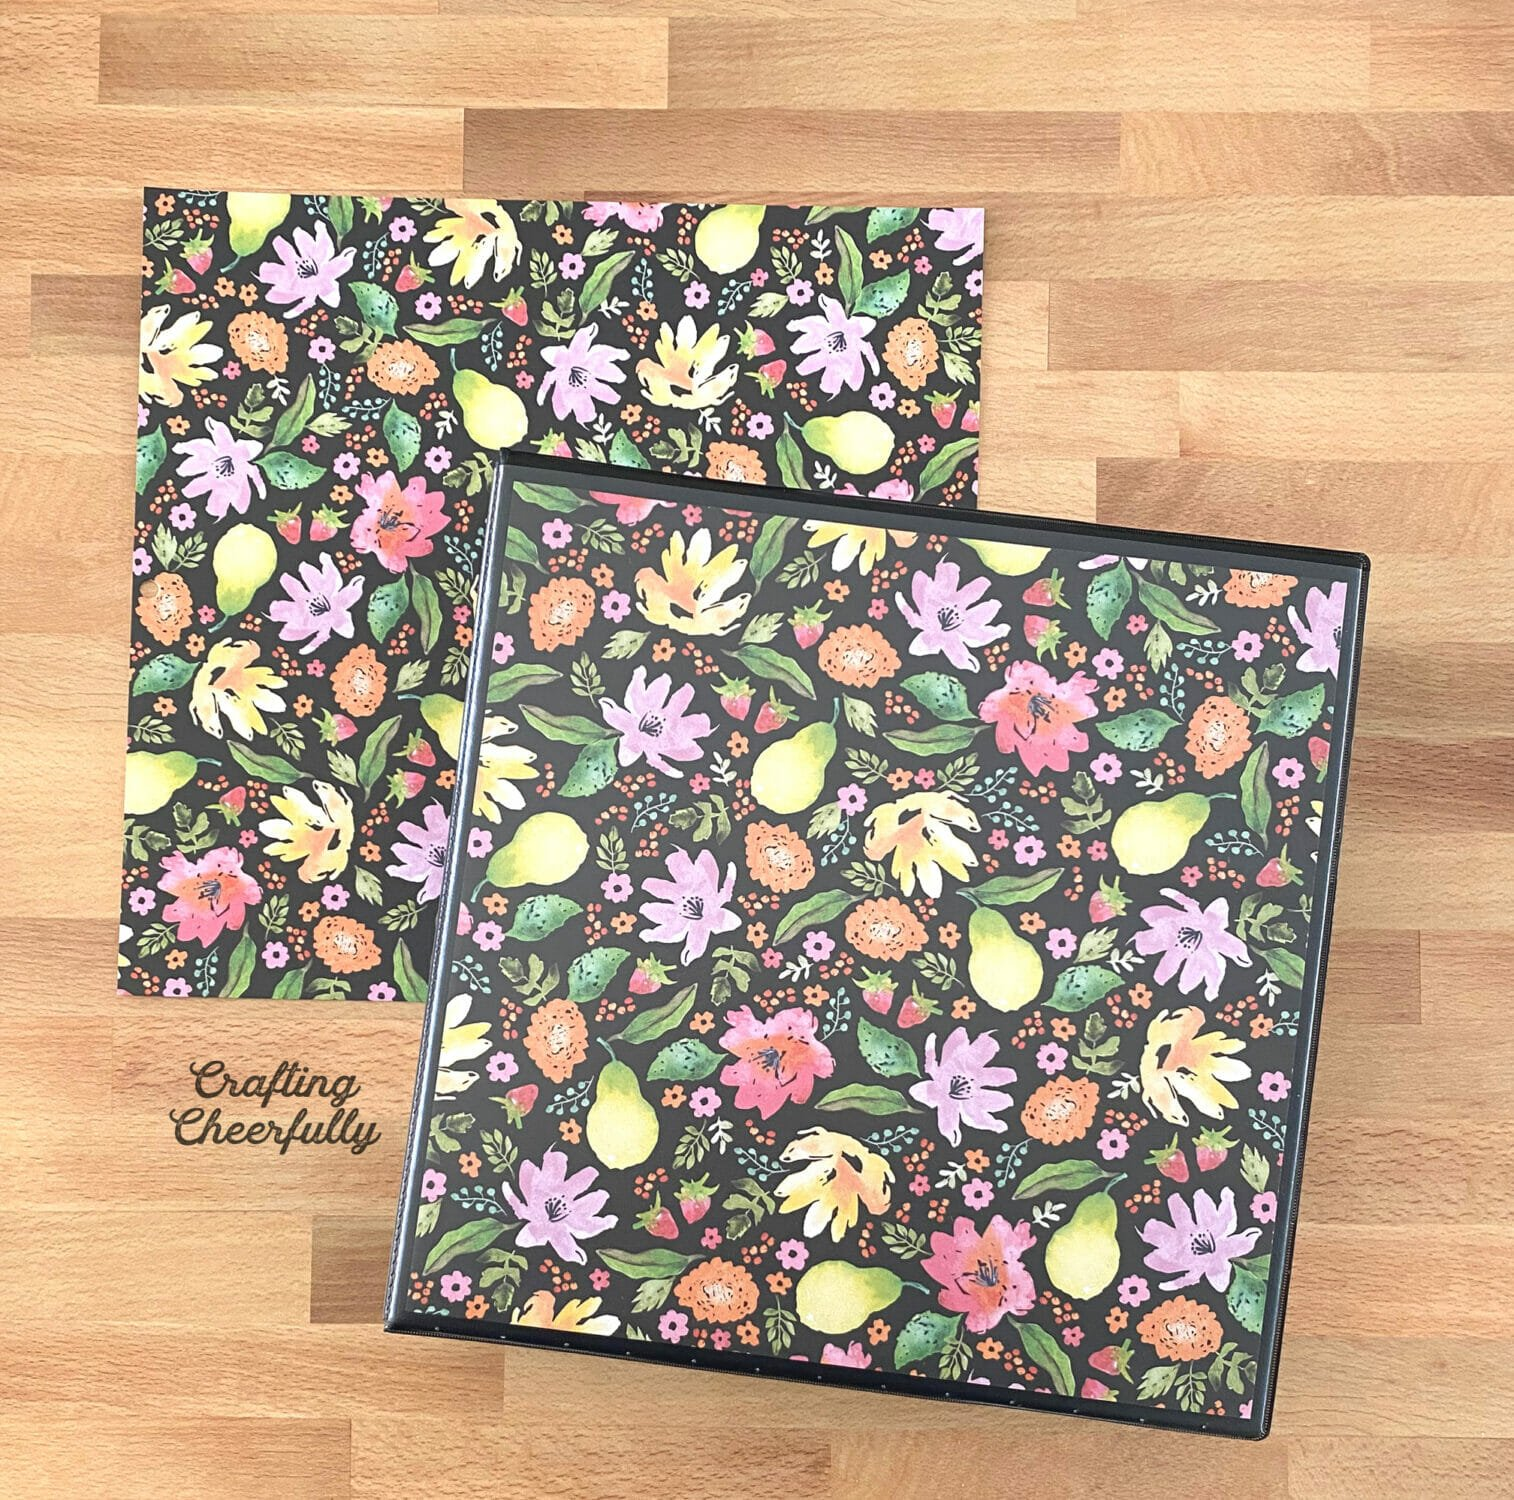 Black binder covered with floral paper on a kitchen counter.